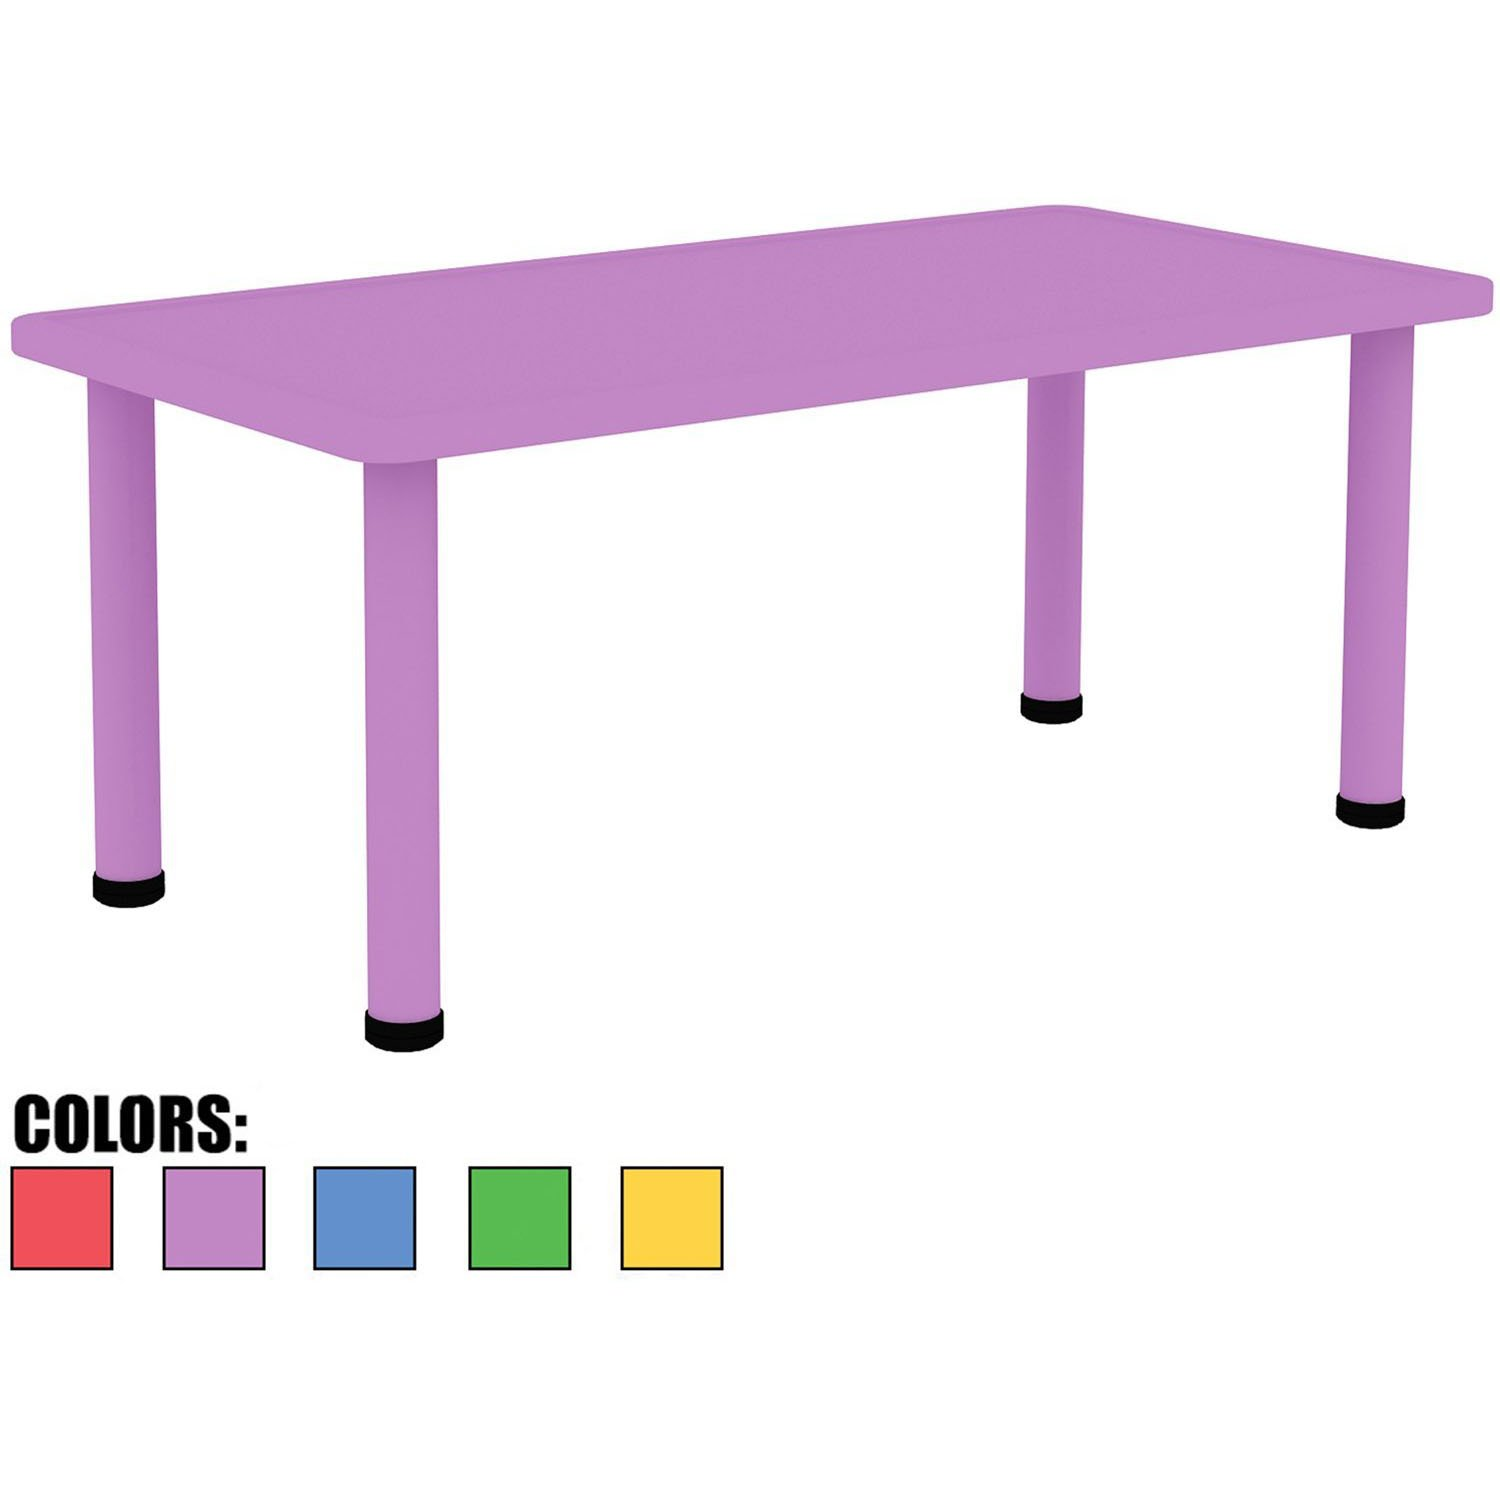 2xhome - Purple - Kids Table - Height Adjustable 18.25'' - 19.25'' Rectangle Shape Child Plastic Activity Table Bright Color Learn Play School Home Fun Children Furniture Round Safety Corner 24''x48 by 2xhome